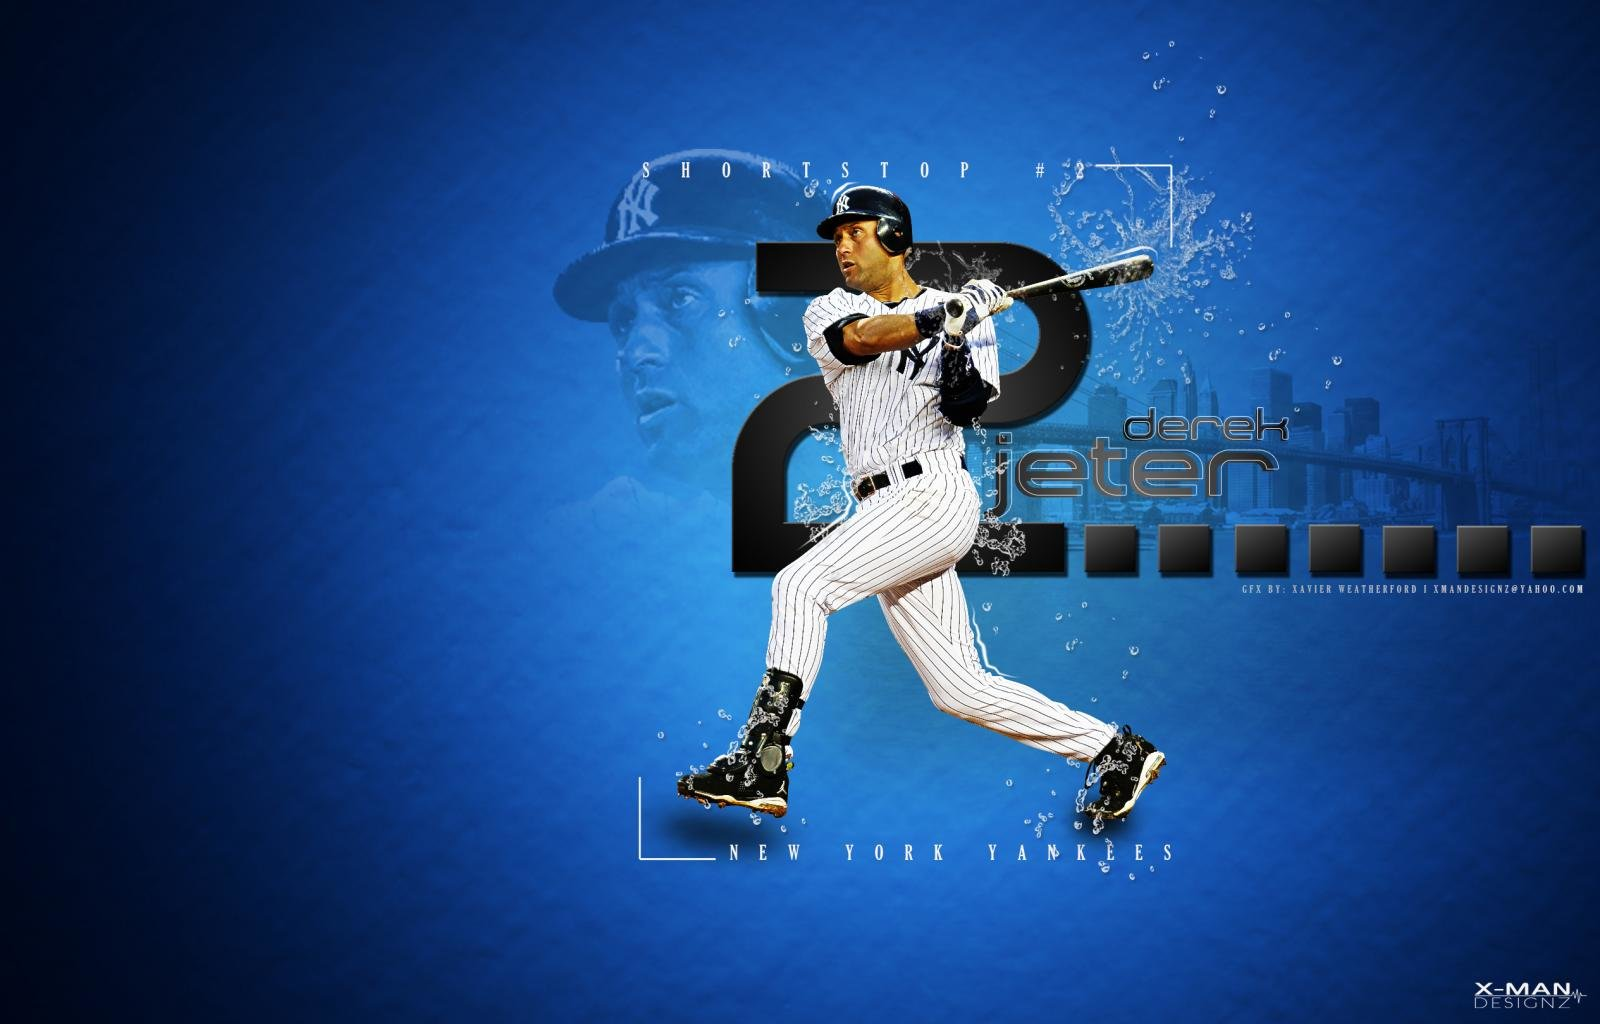 Free download New York Yankees background ID:21883 hd 1600x1024 for computer